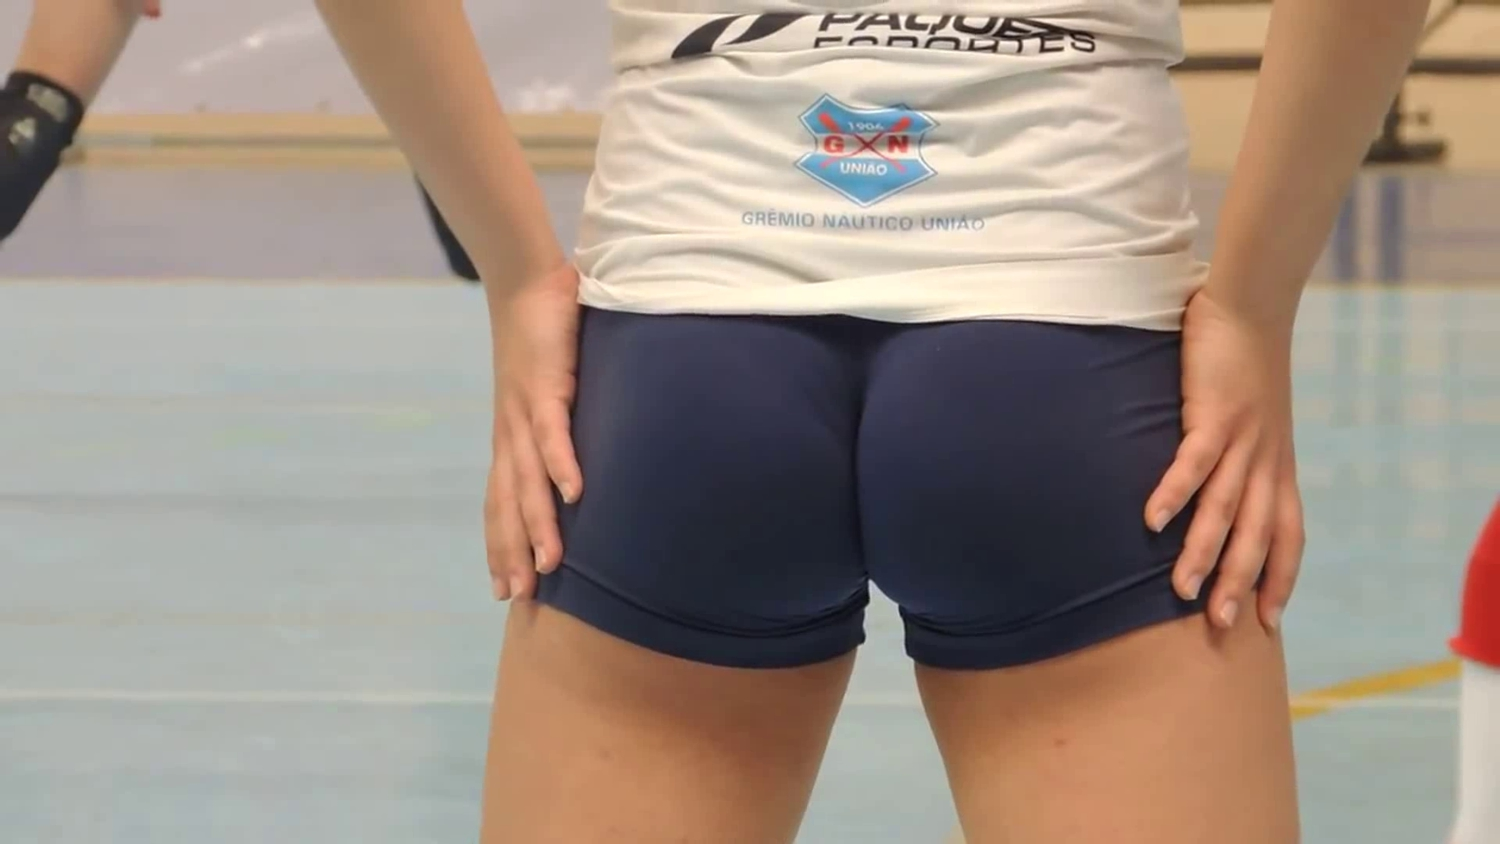 Playing volleyball with a taut shorts - Part two of two